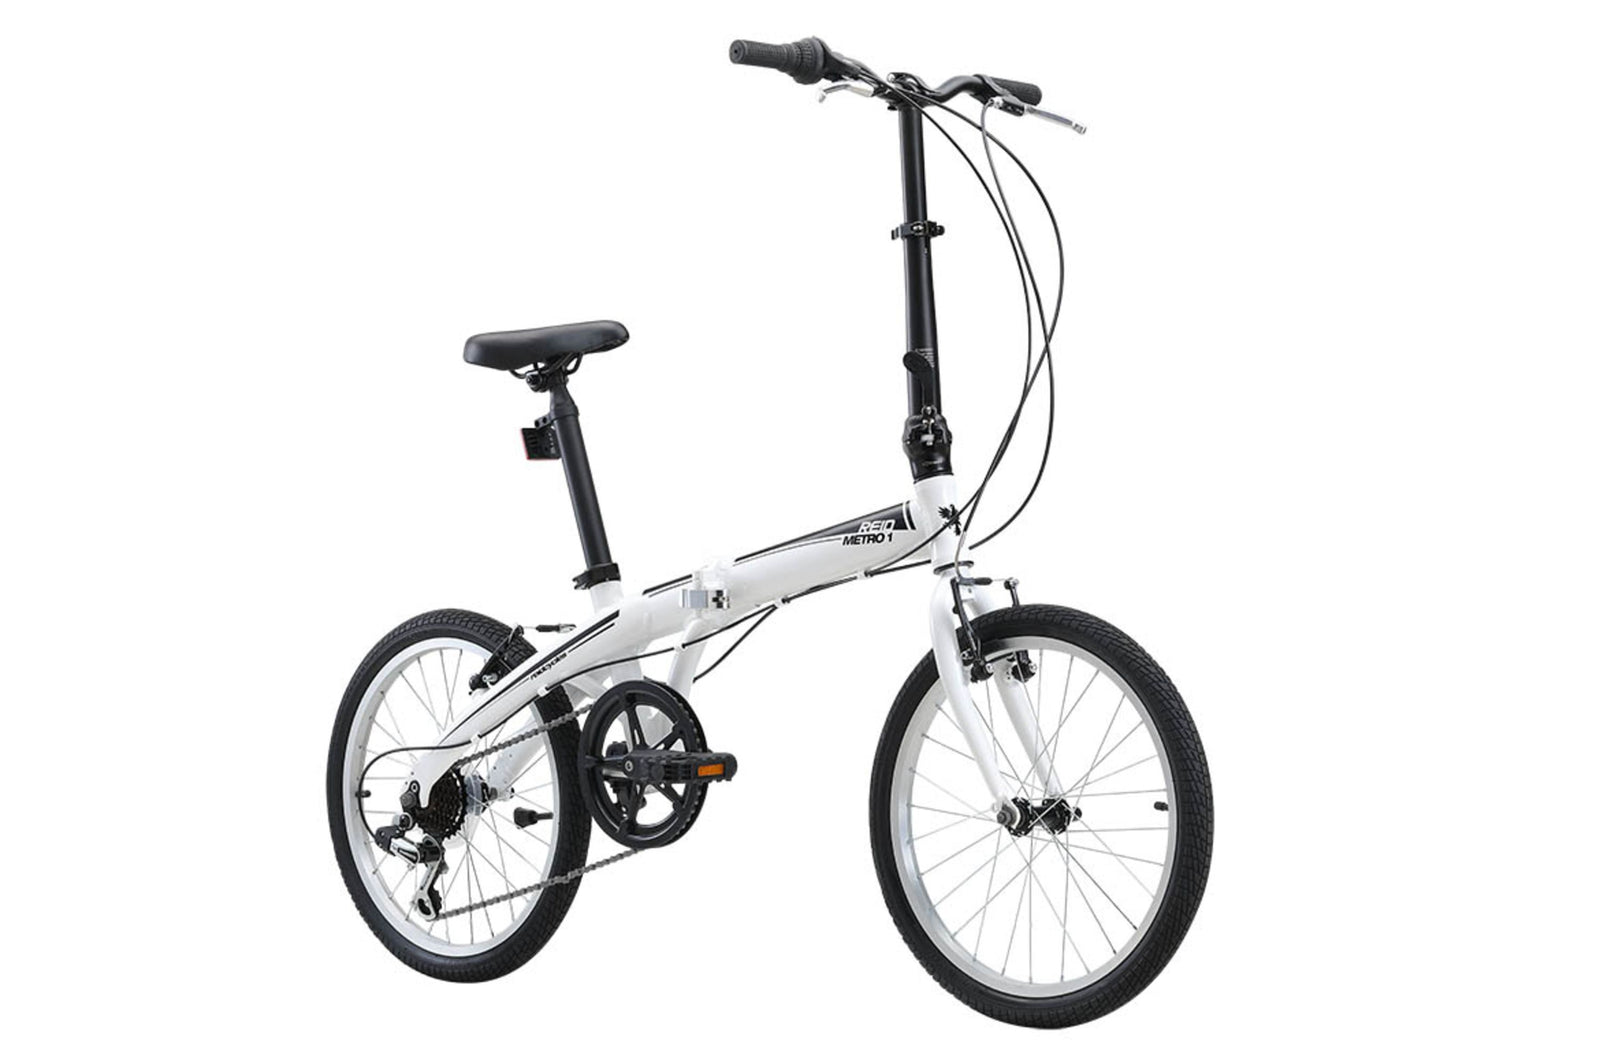 Metro Folding Bike commuter bike in white on front angle from Reid Cycles Australia